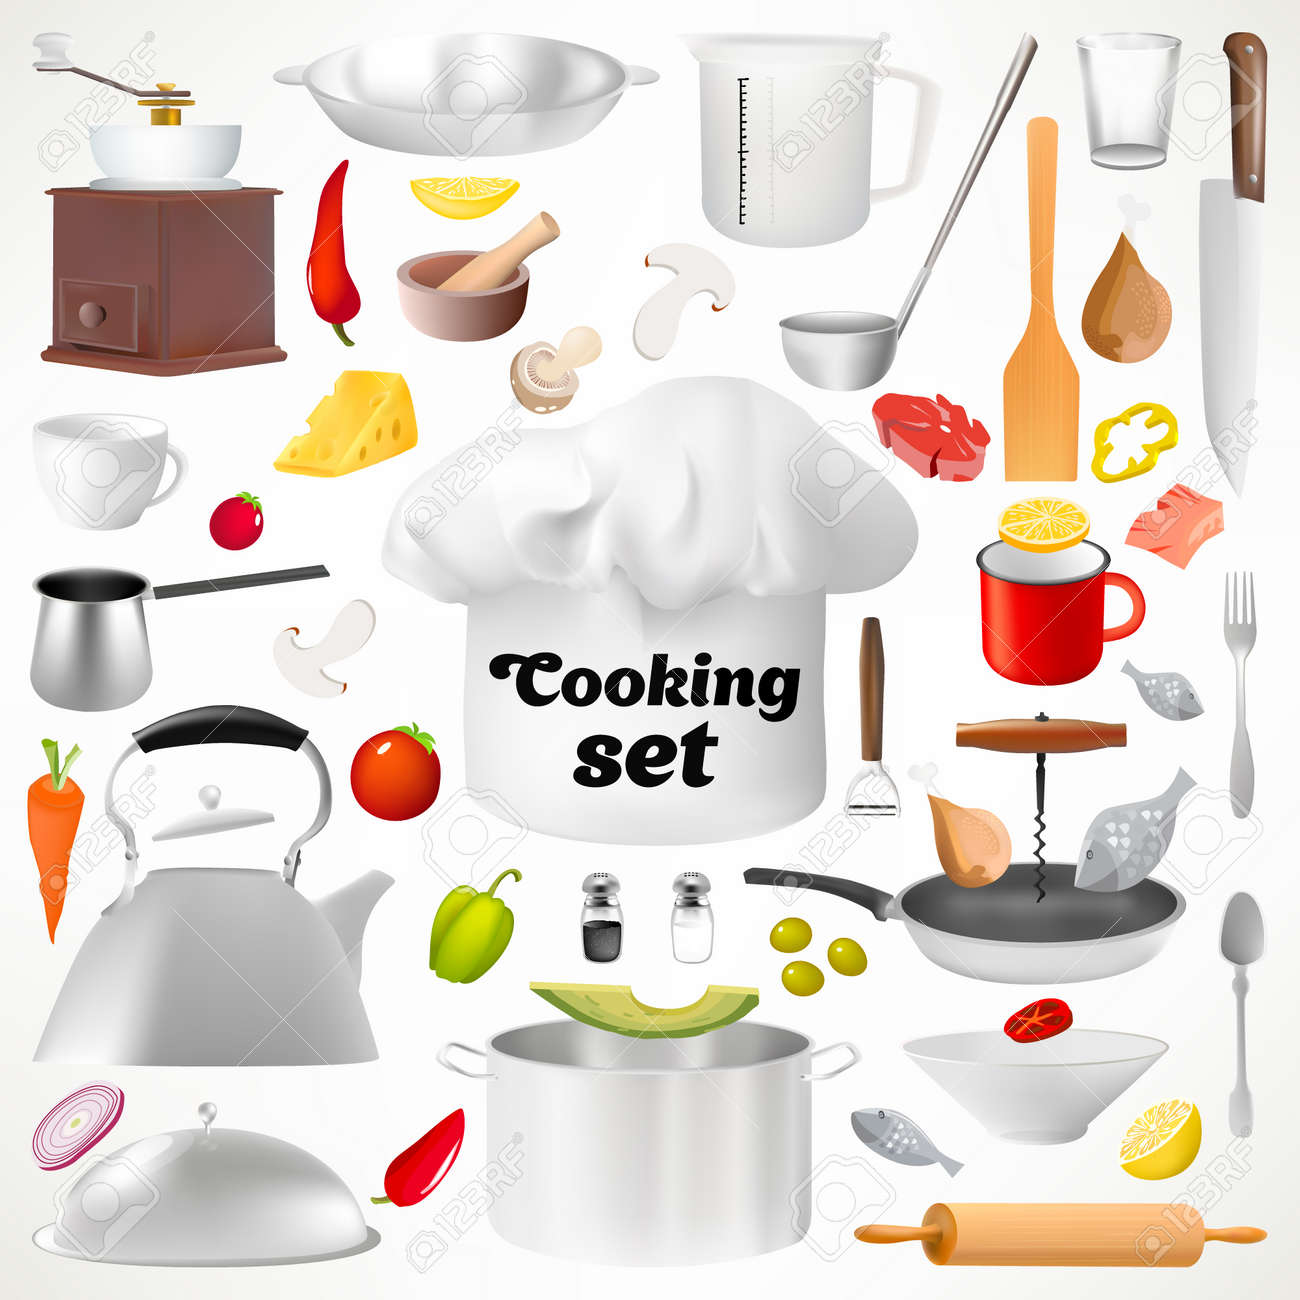 Beautiful Oggetti Per Cucina Pictures - Skilifts.us - skilifts.us